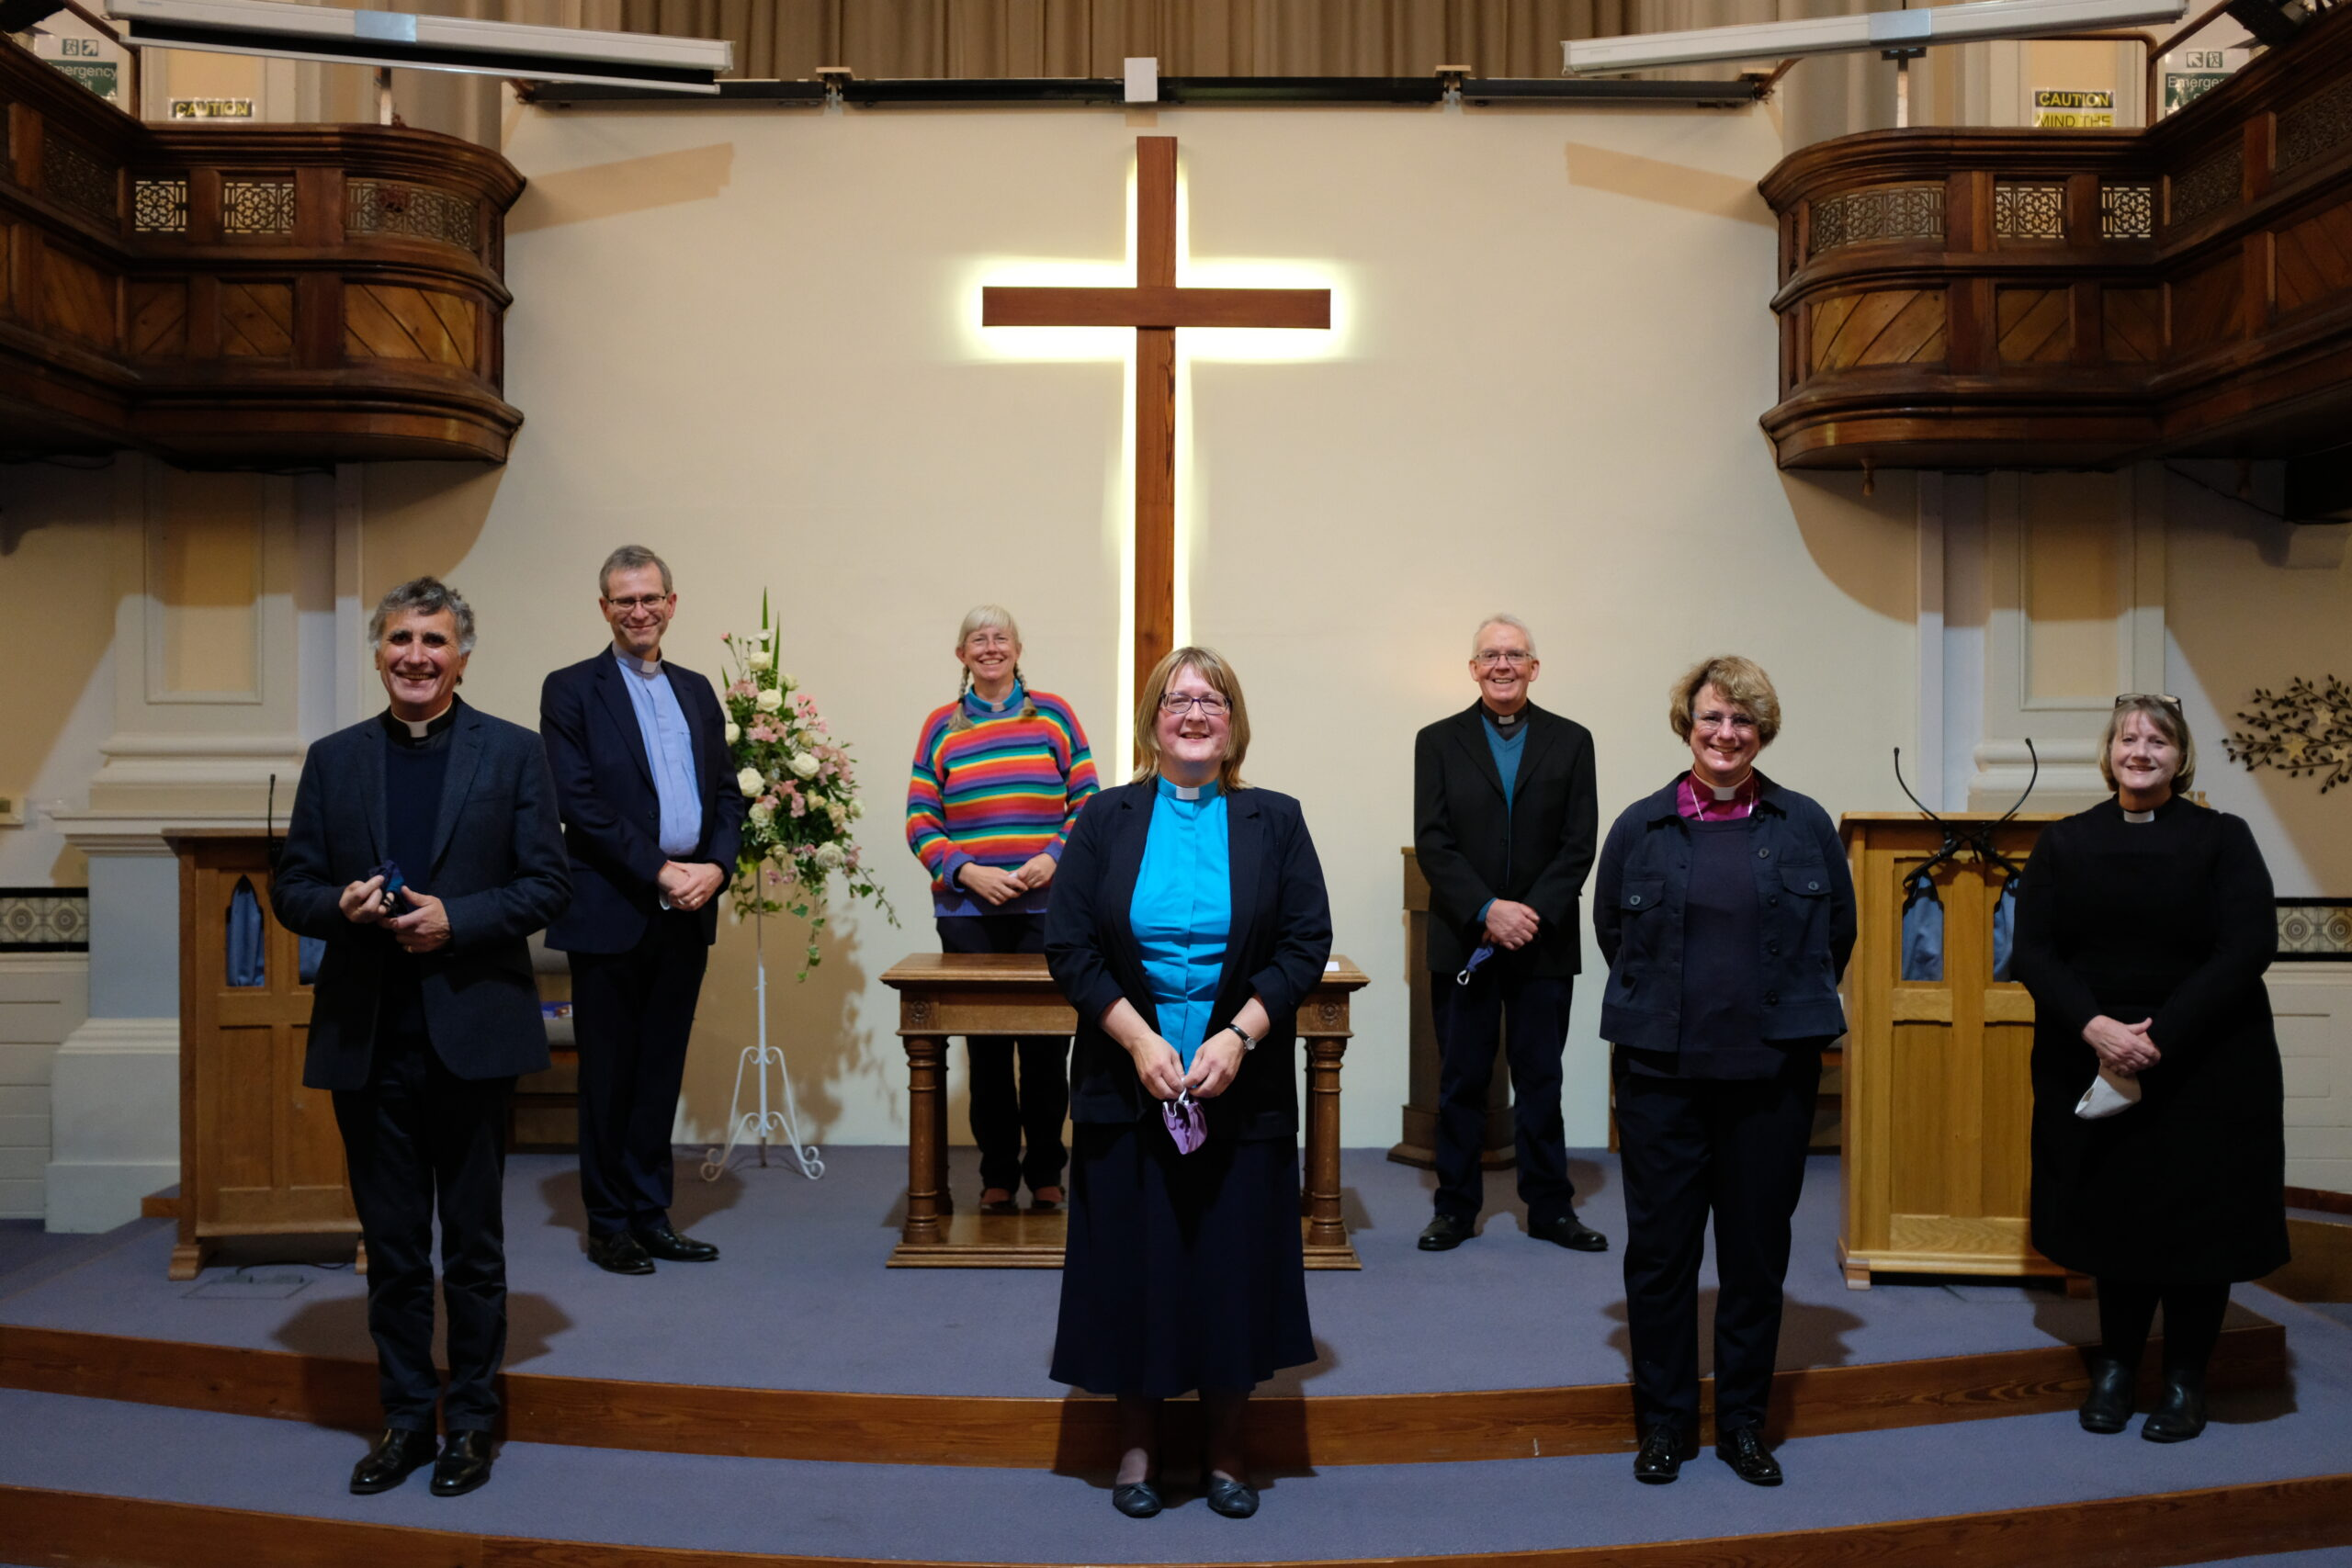 Ecumenical partners greet Rev Melanie Greenall, newly appointed Superintendent of Kendal Methodist Circuit